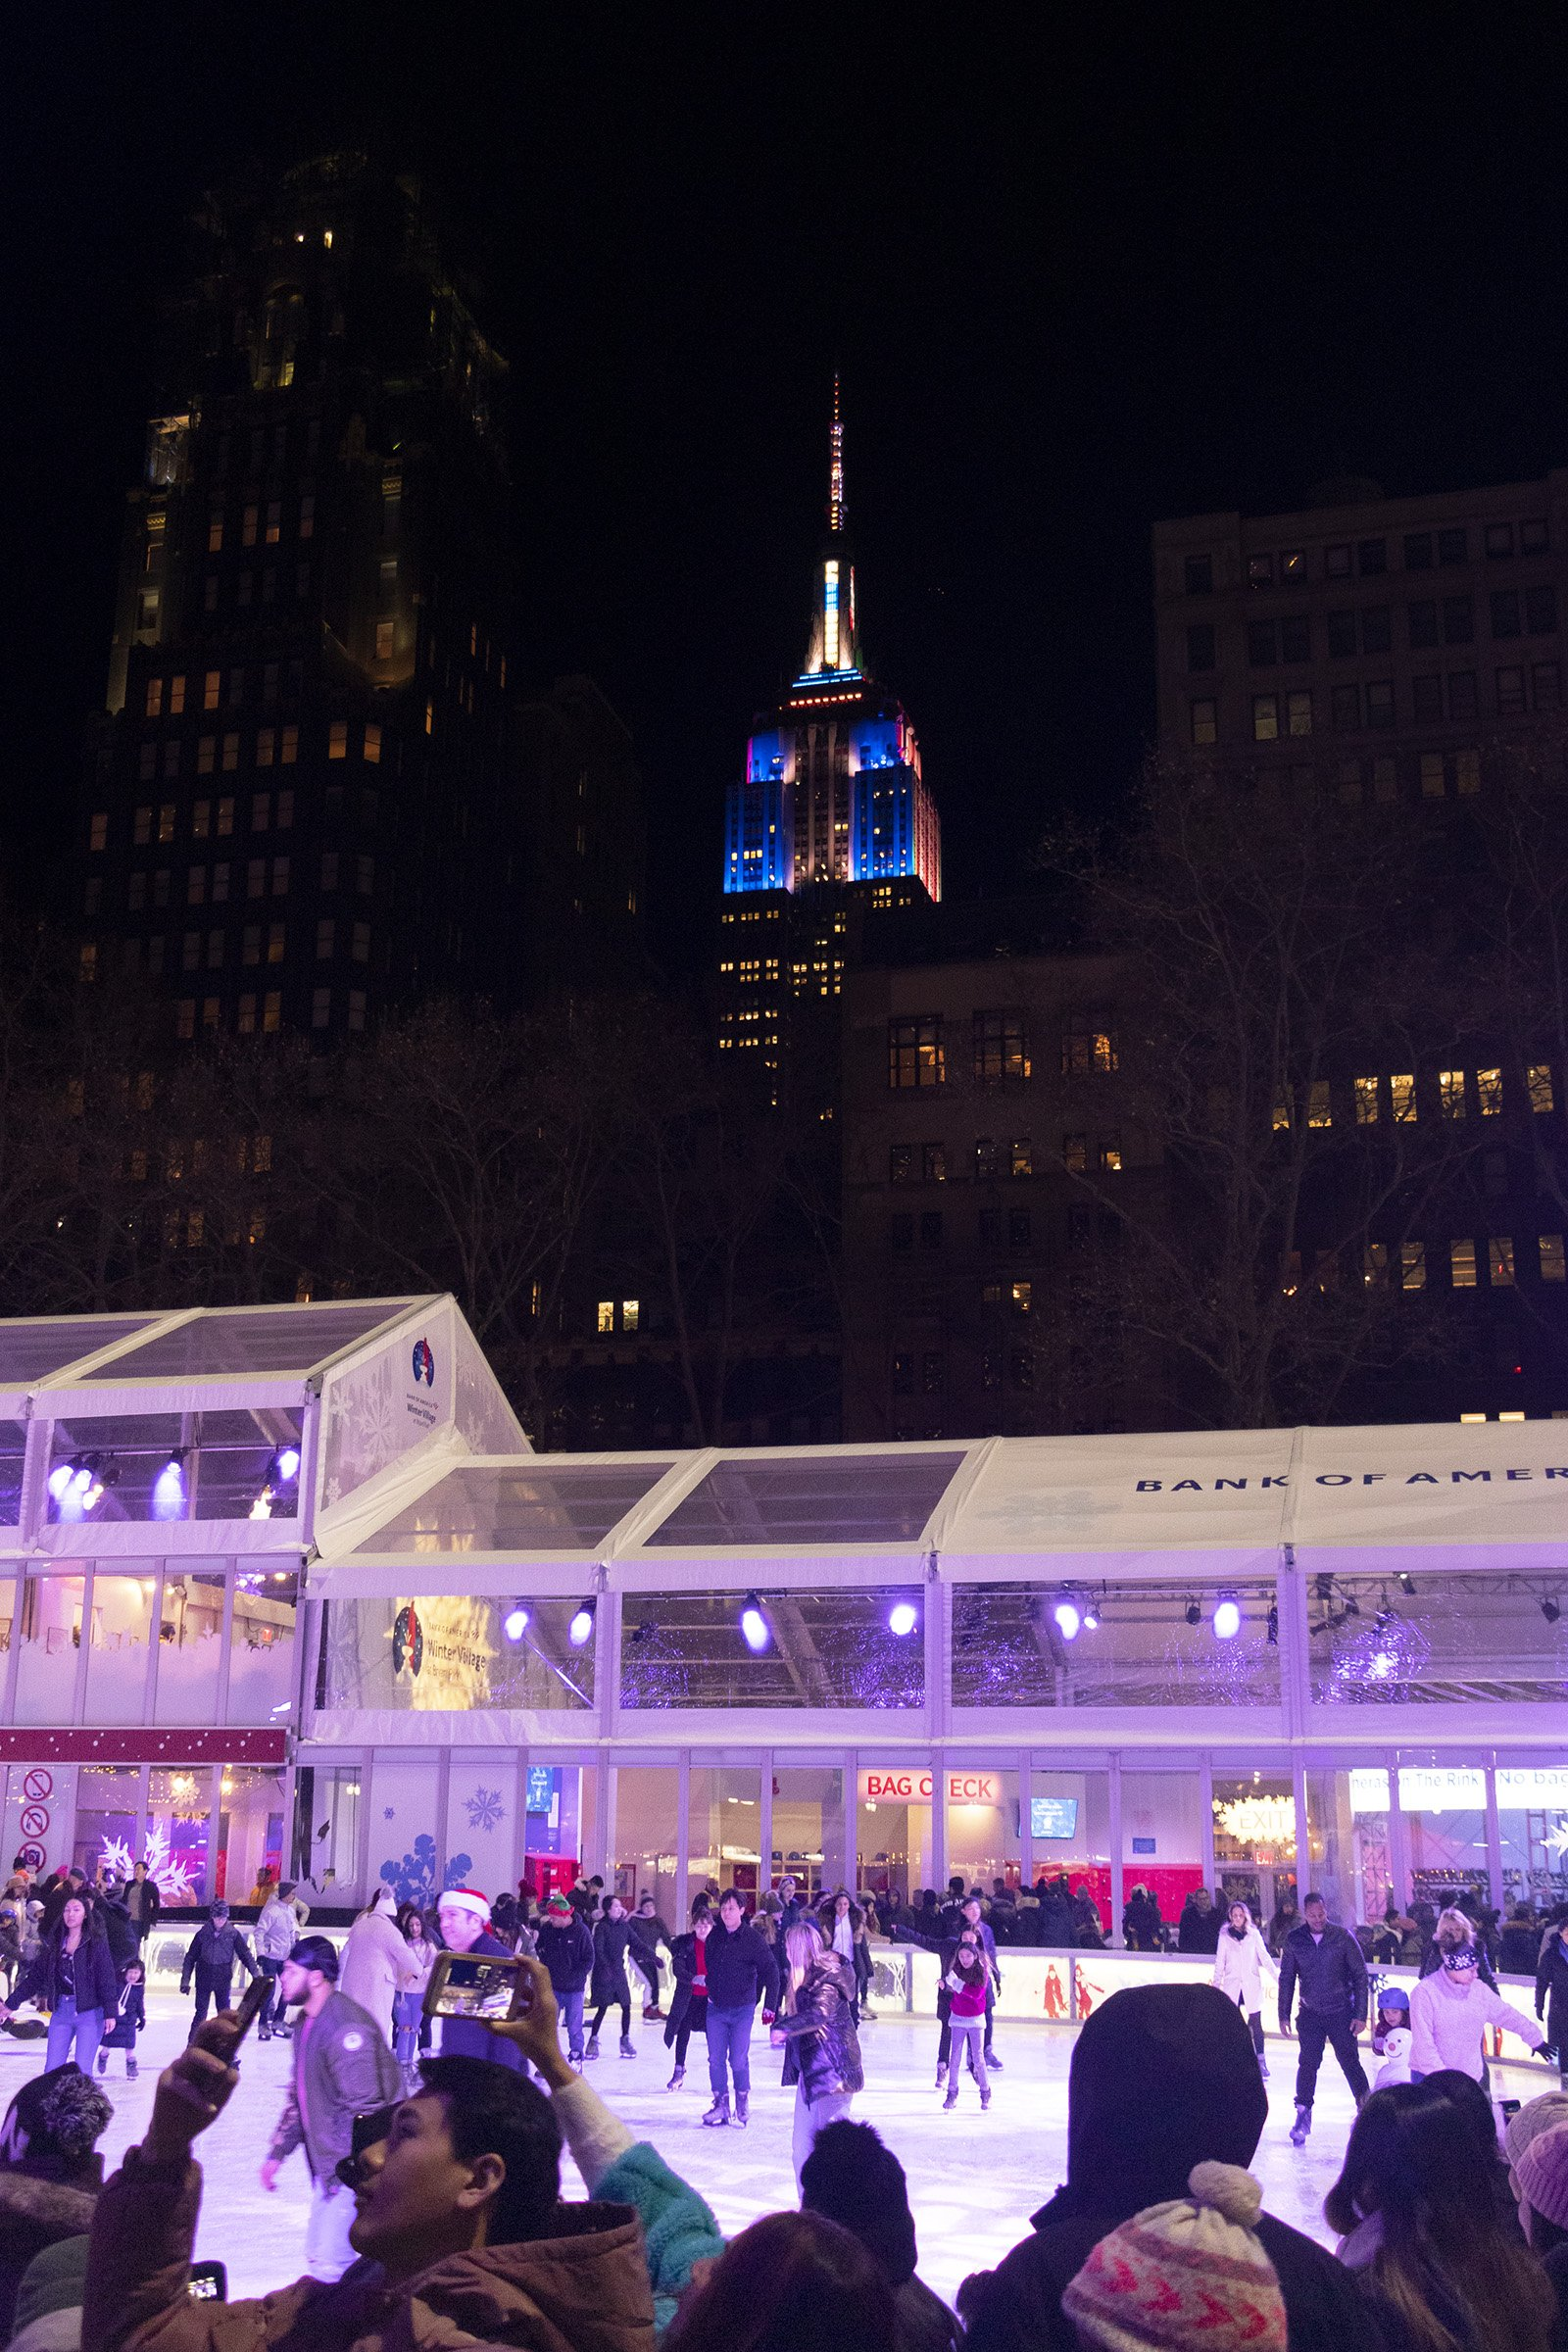 Bryant Park skating rink and Empire State Building with Christmas lights